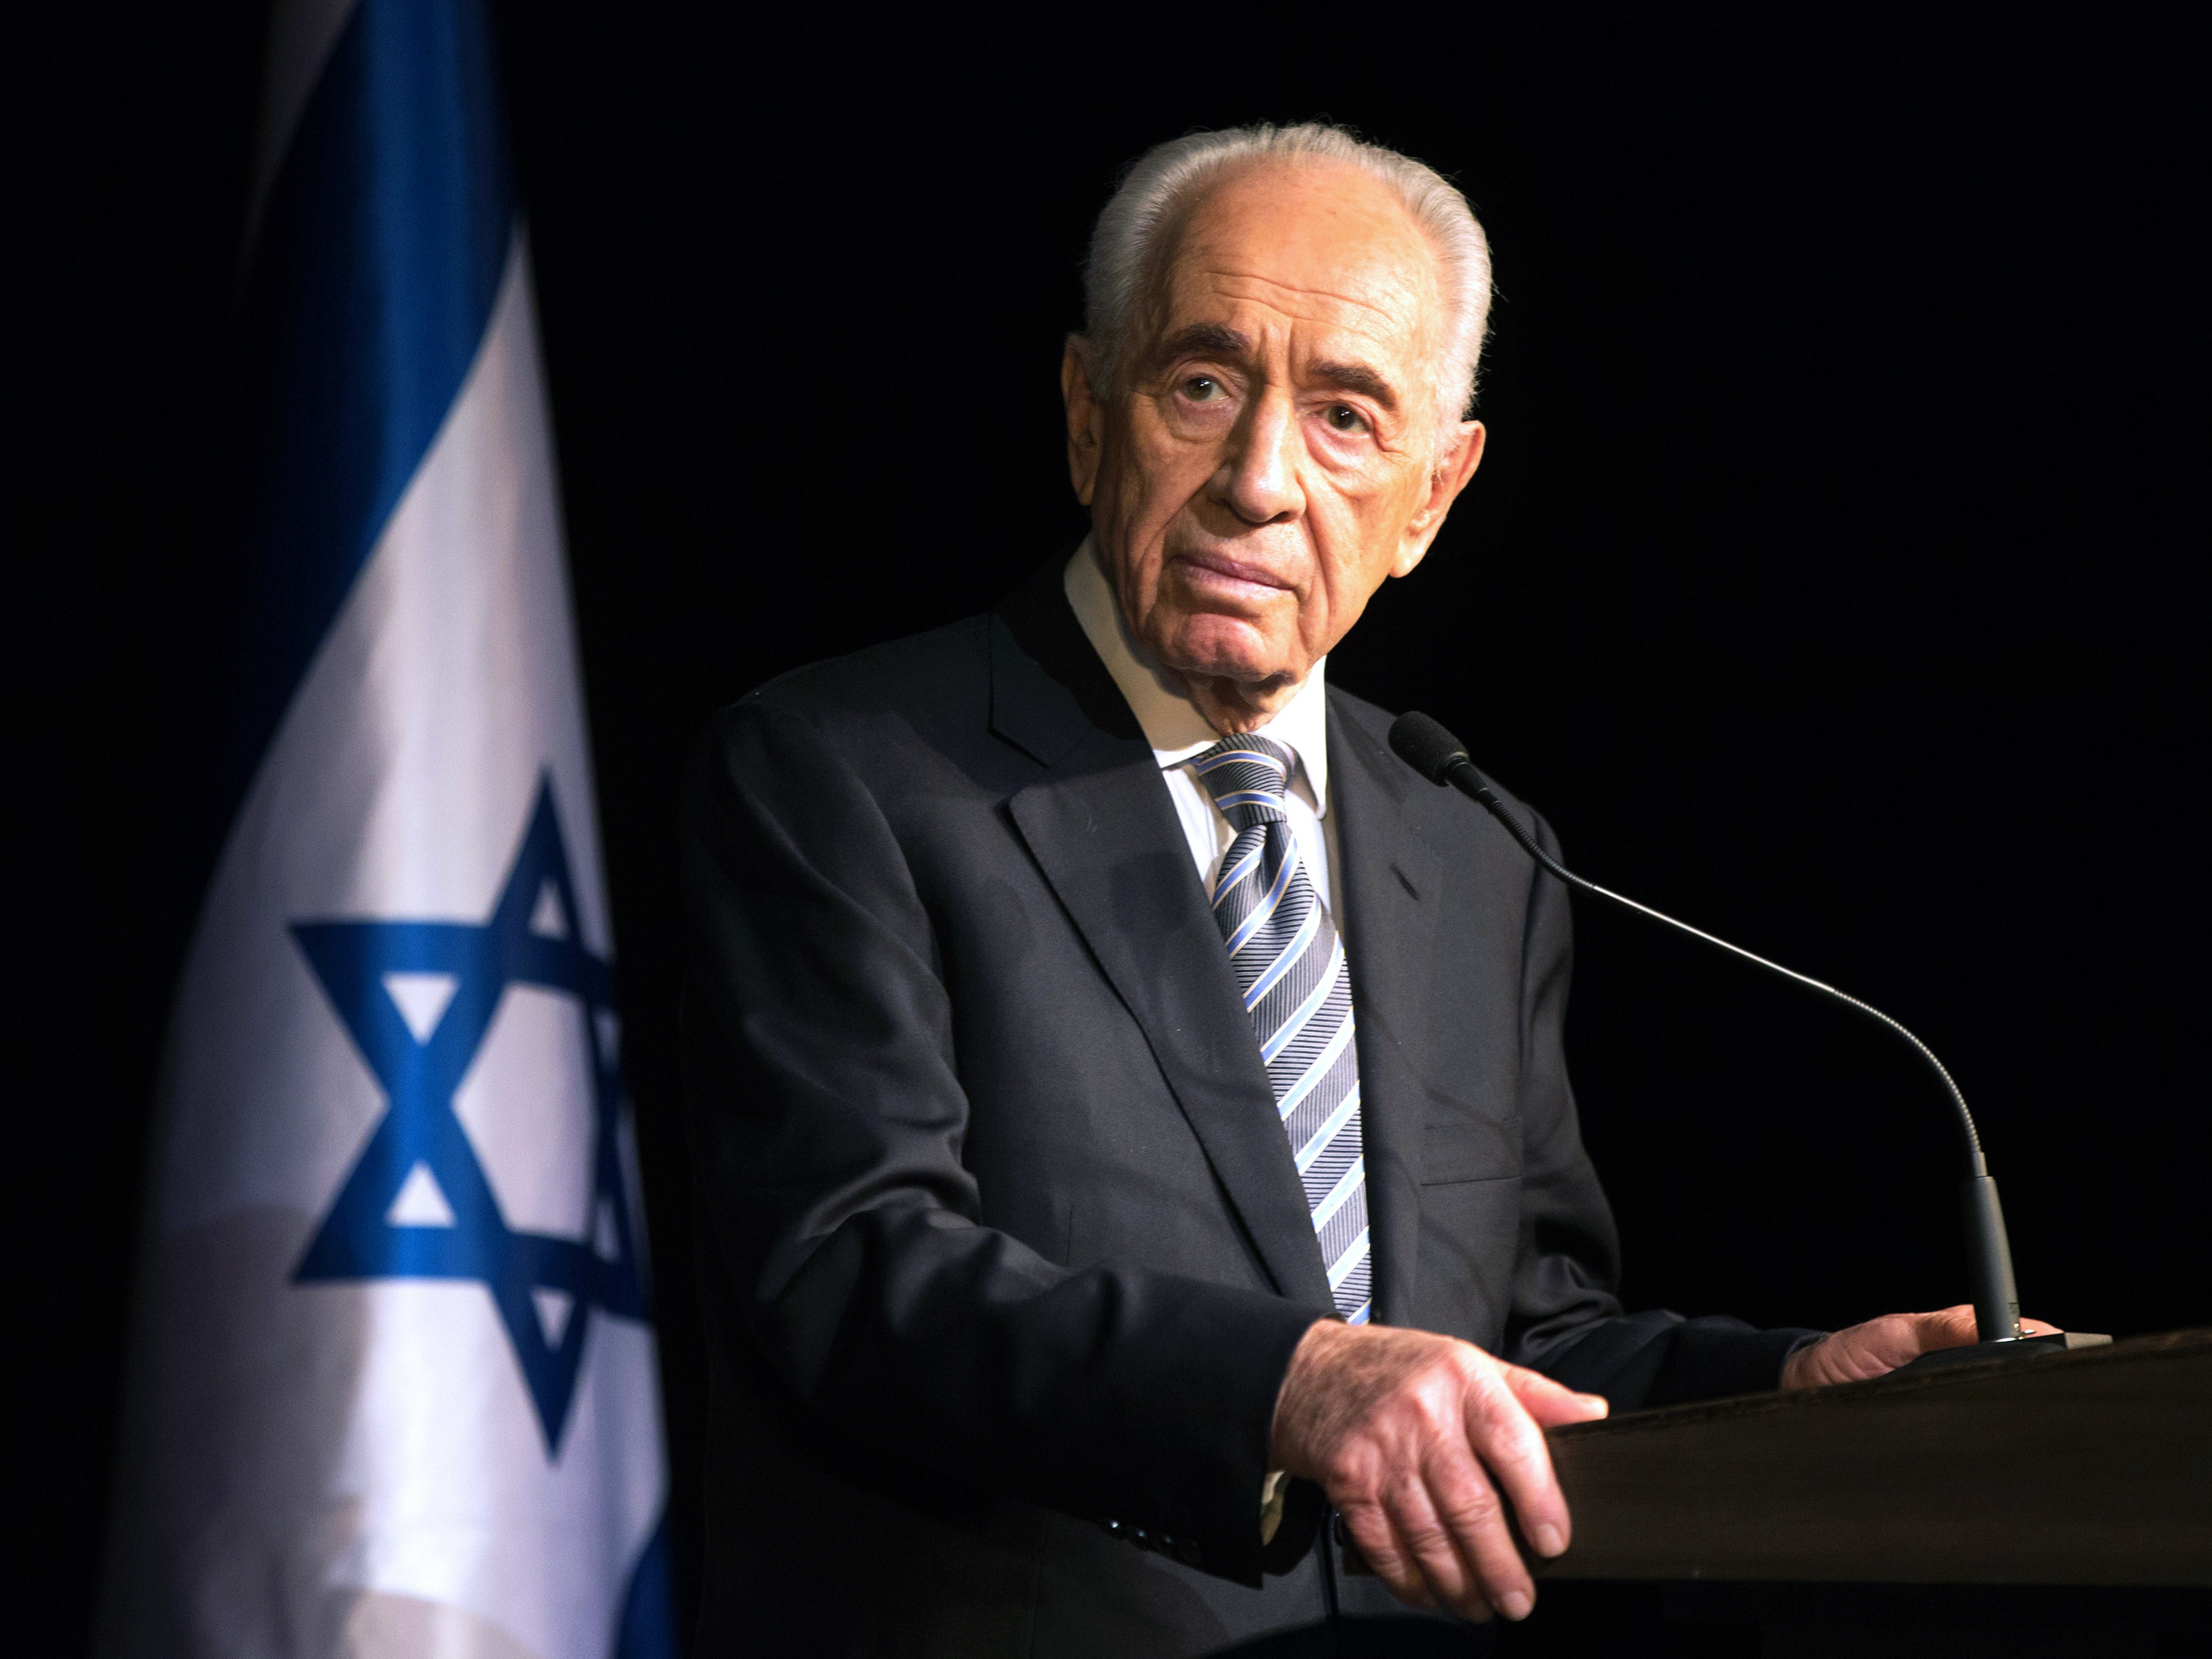 Shimon Peres, One of Israel's Founding Leaders, Dies At 93